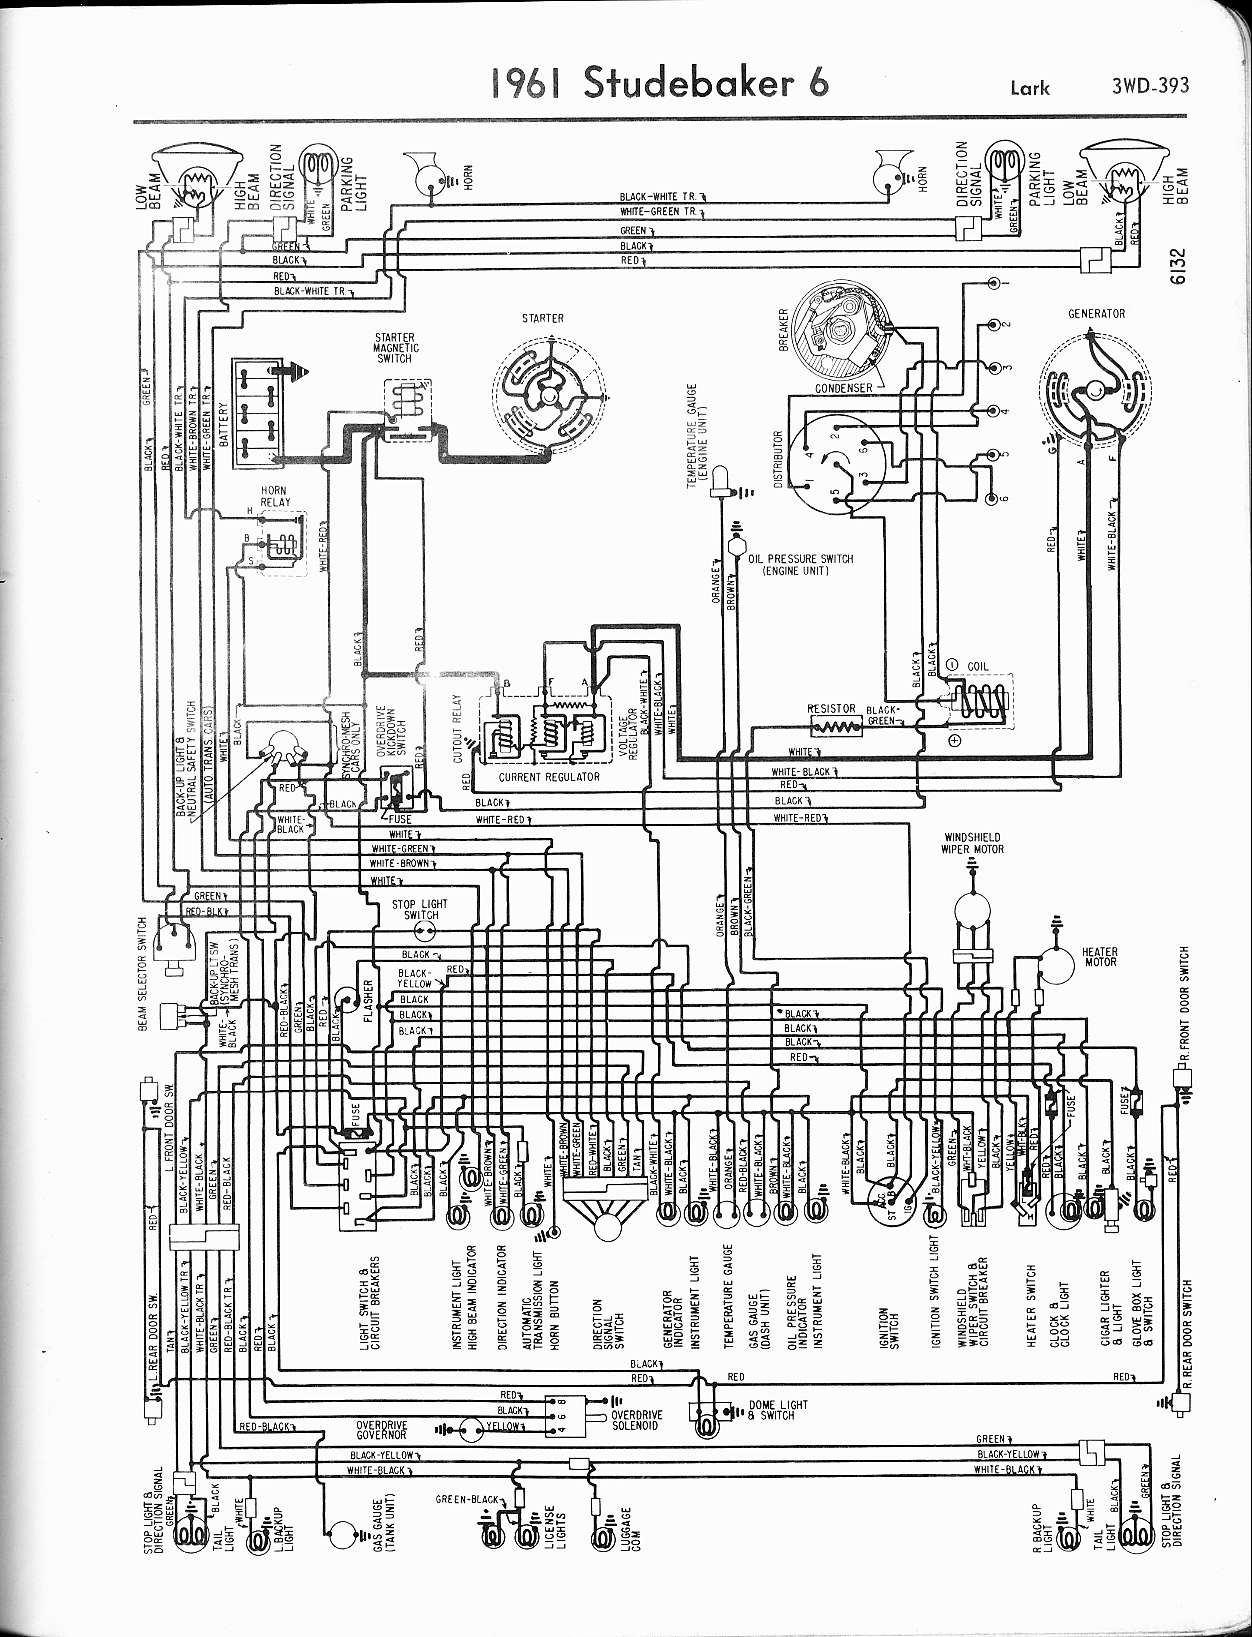 Wiring Manual Studebaker Wiring Diagram